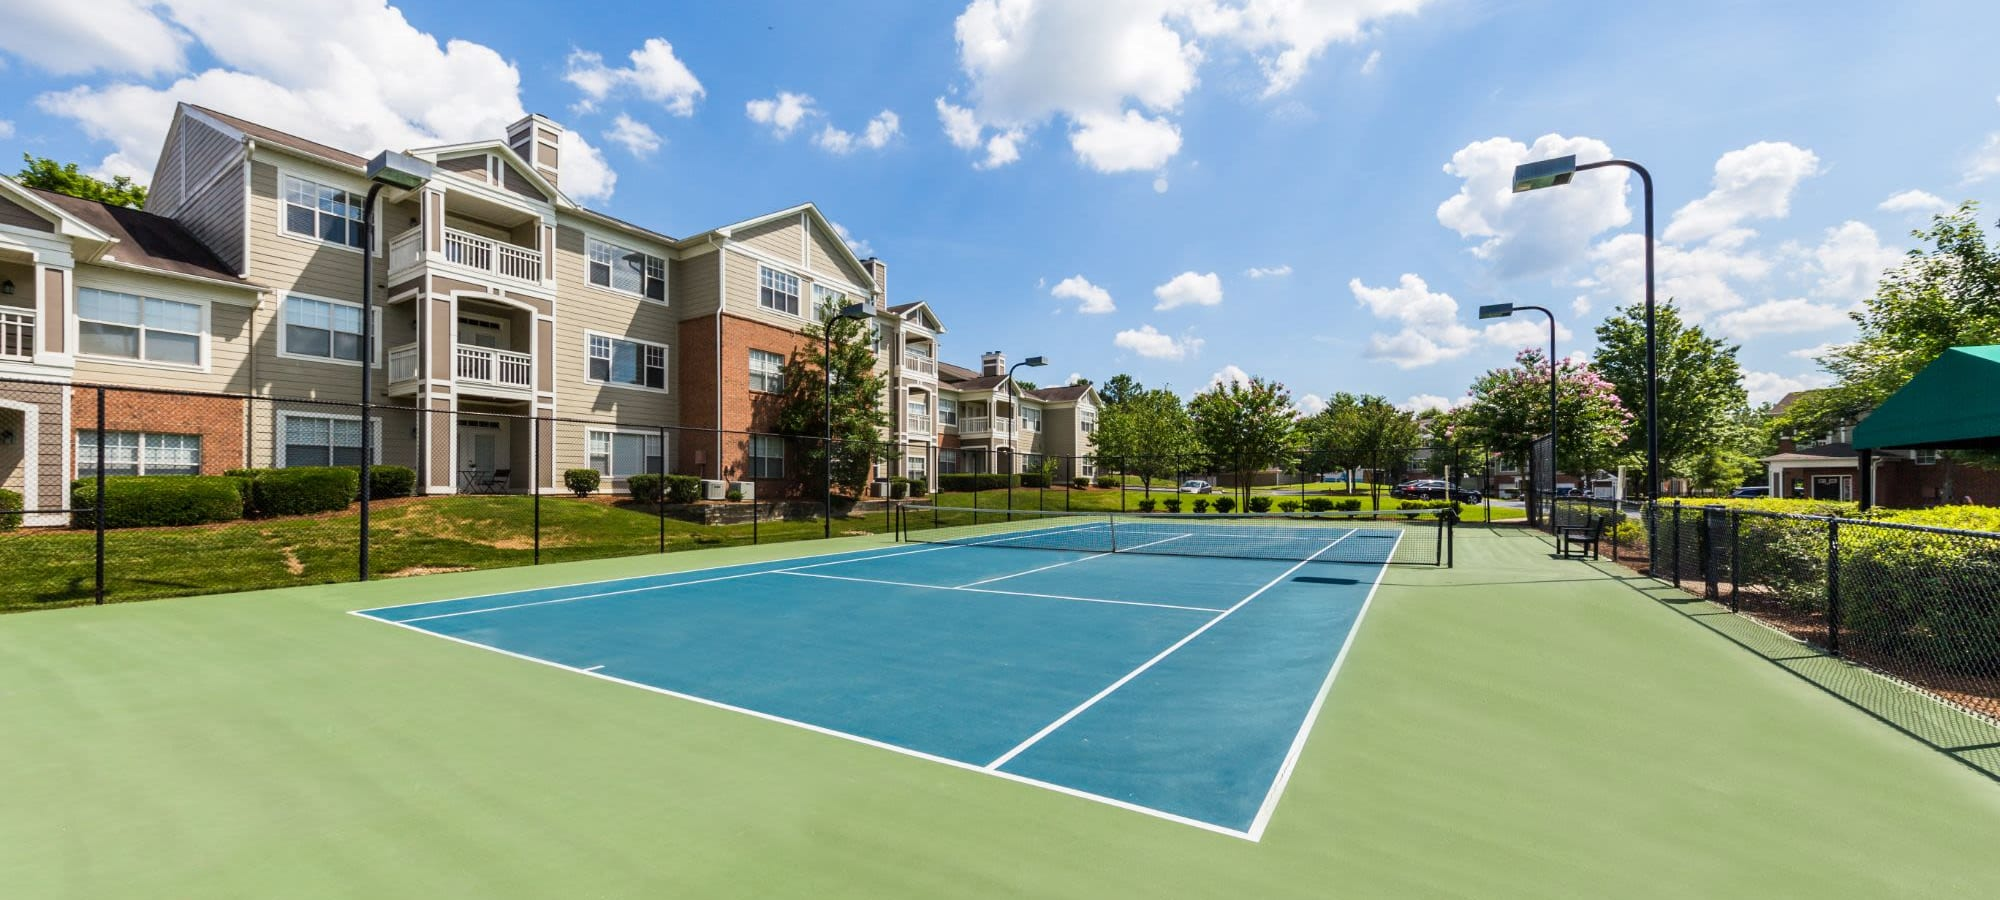 Schedule a tour of The Preserve at Ballantyne Commons in Charlotte, North Carolina